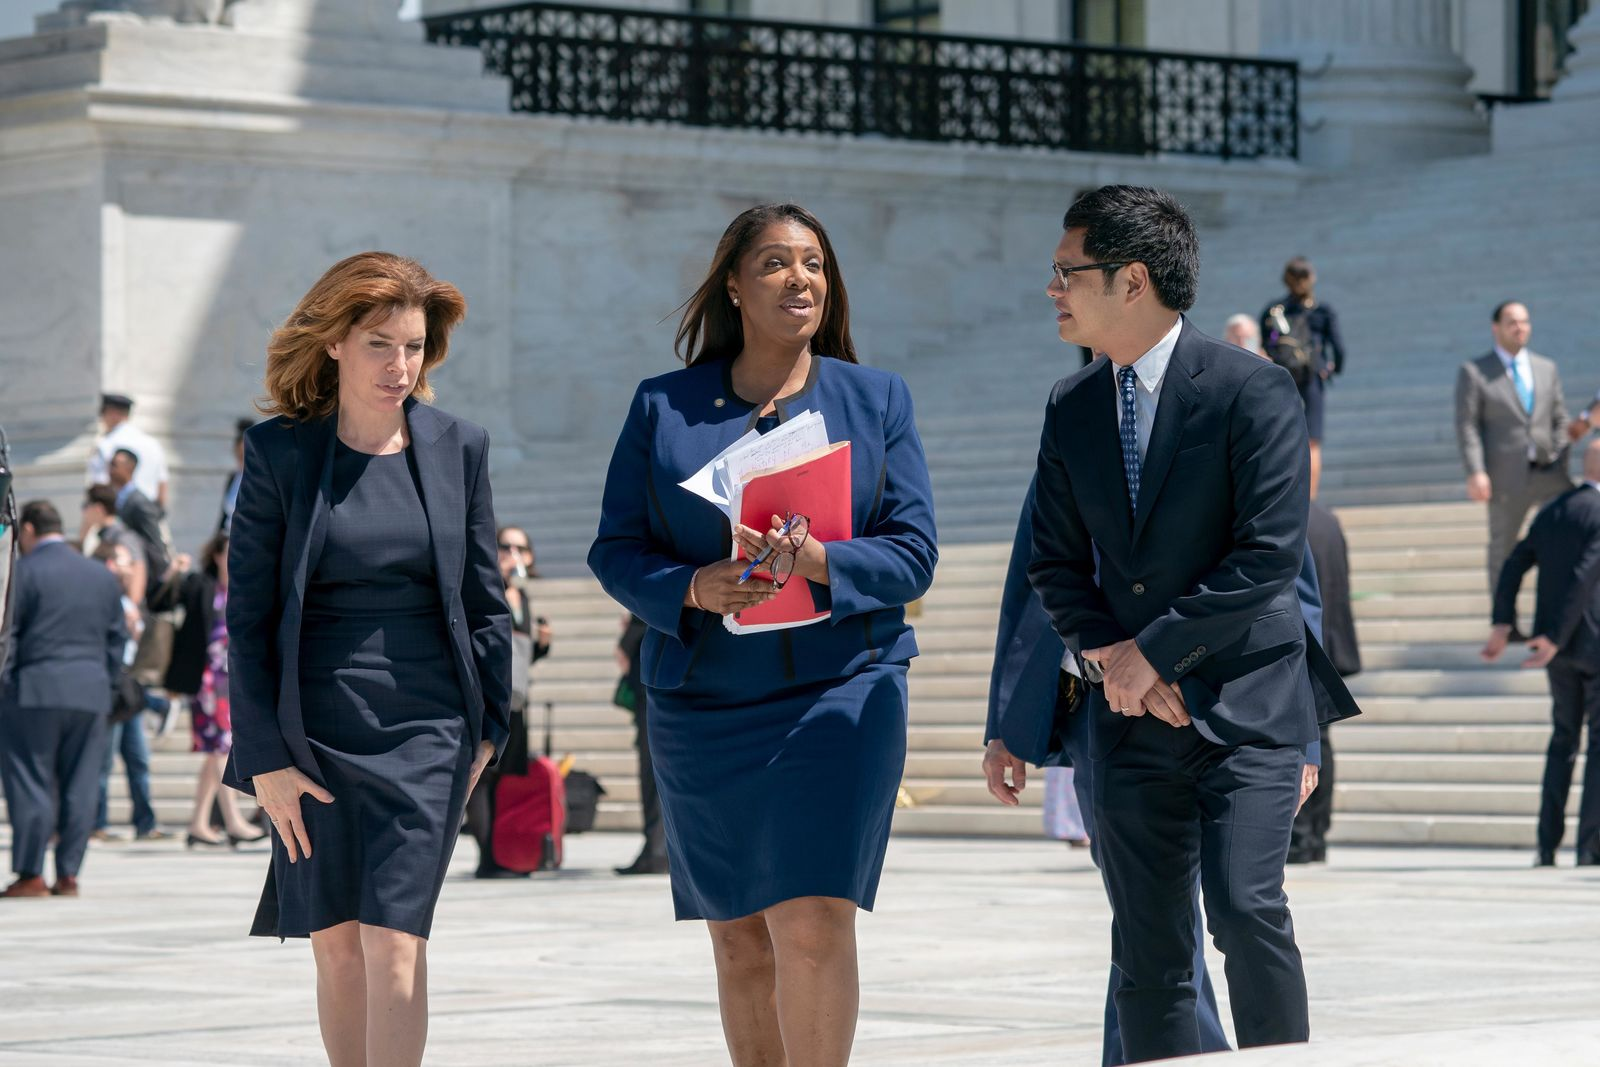 From left, New York City Census Director Julie Menin, New York State Attorney General Letitia James, and Dale Ho, an attorney for the American Civil Liberties Union, leaves after the Supreme Court heard arguments over the Trump administration's plan to ask about citizenship on the 2020 census, in Washington, Tuesday, April 23, 2019.{ } (AP Photo/J. Scott Applewhite)